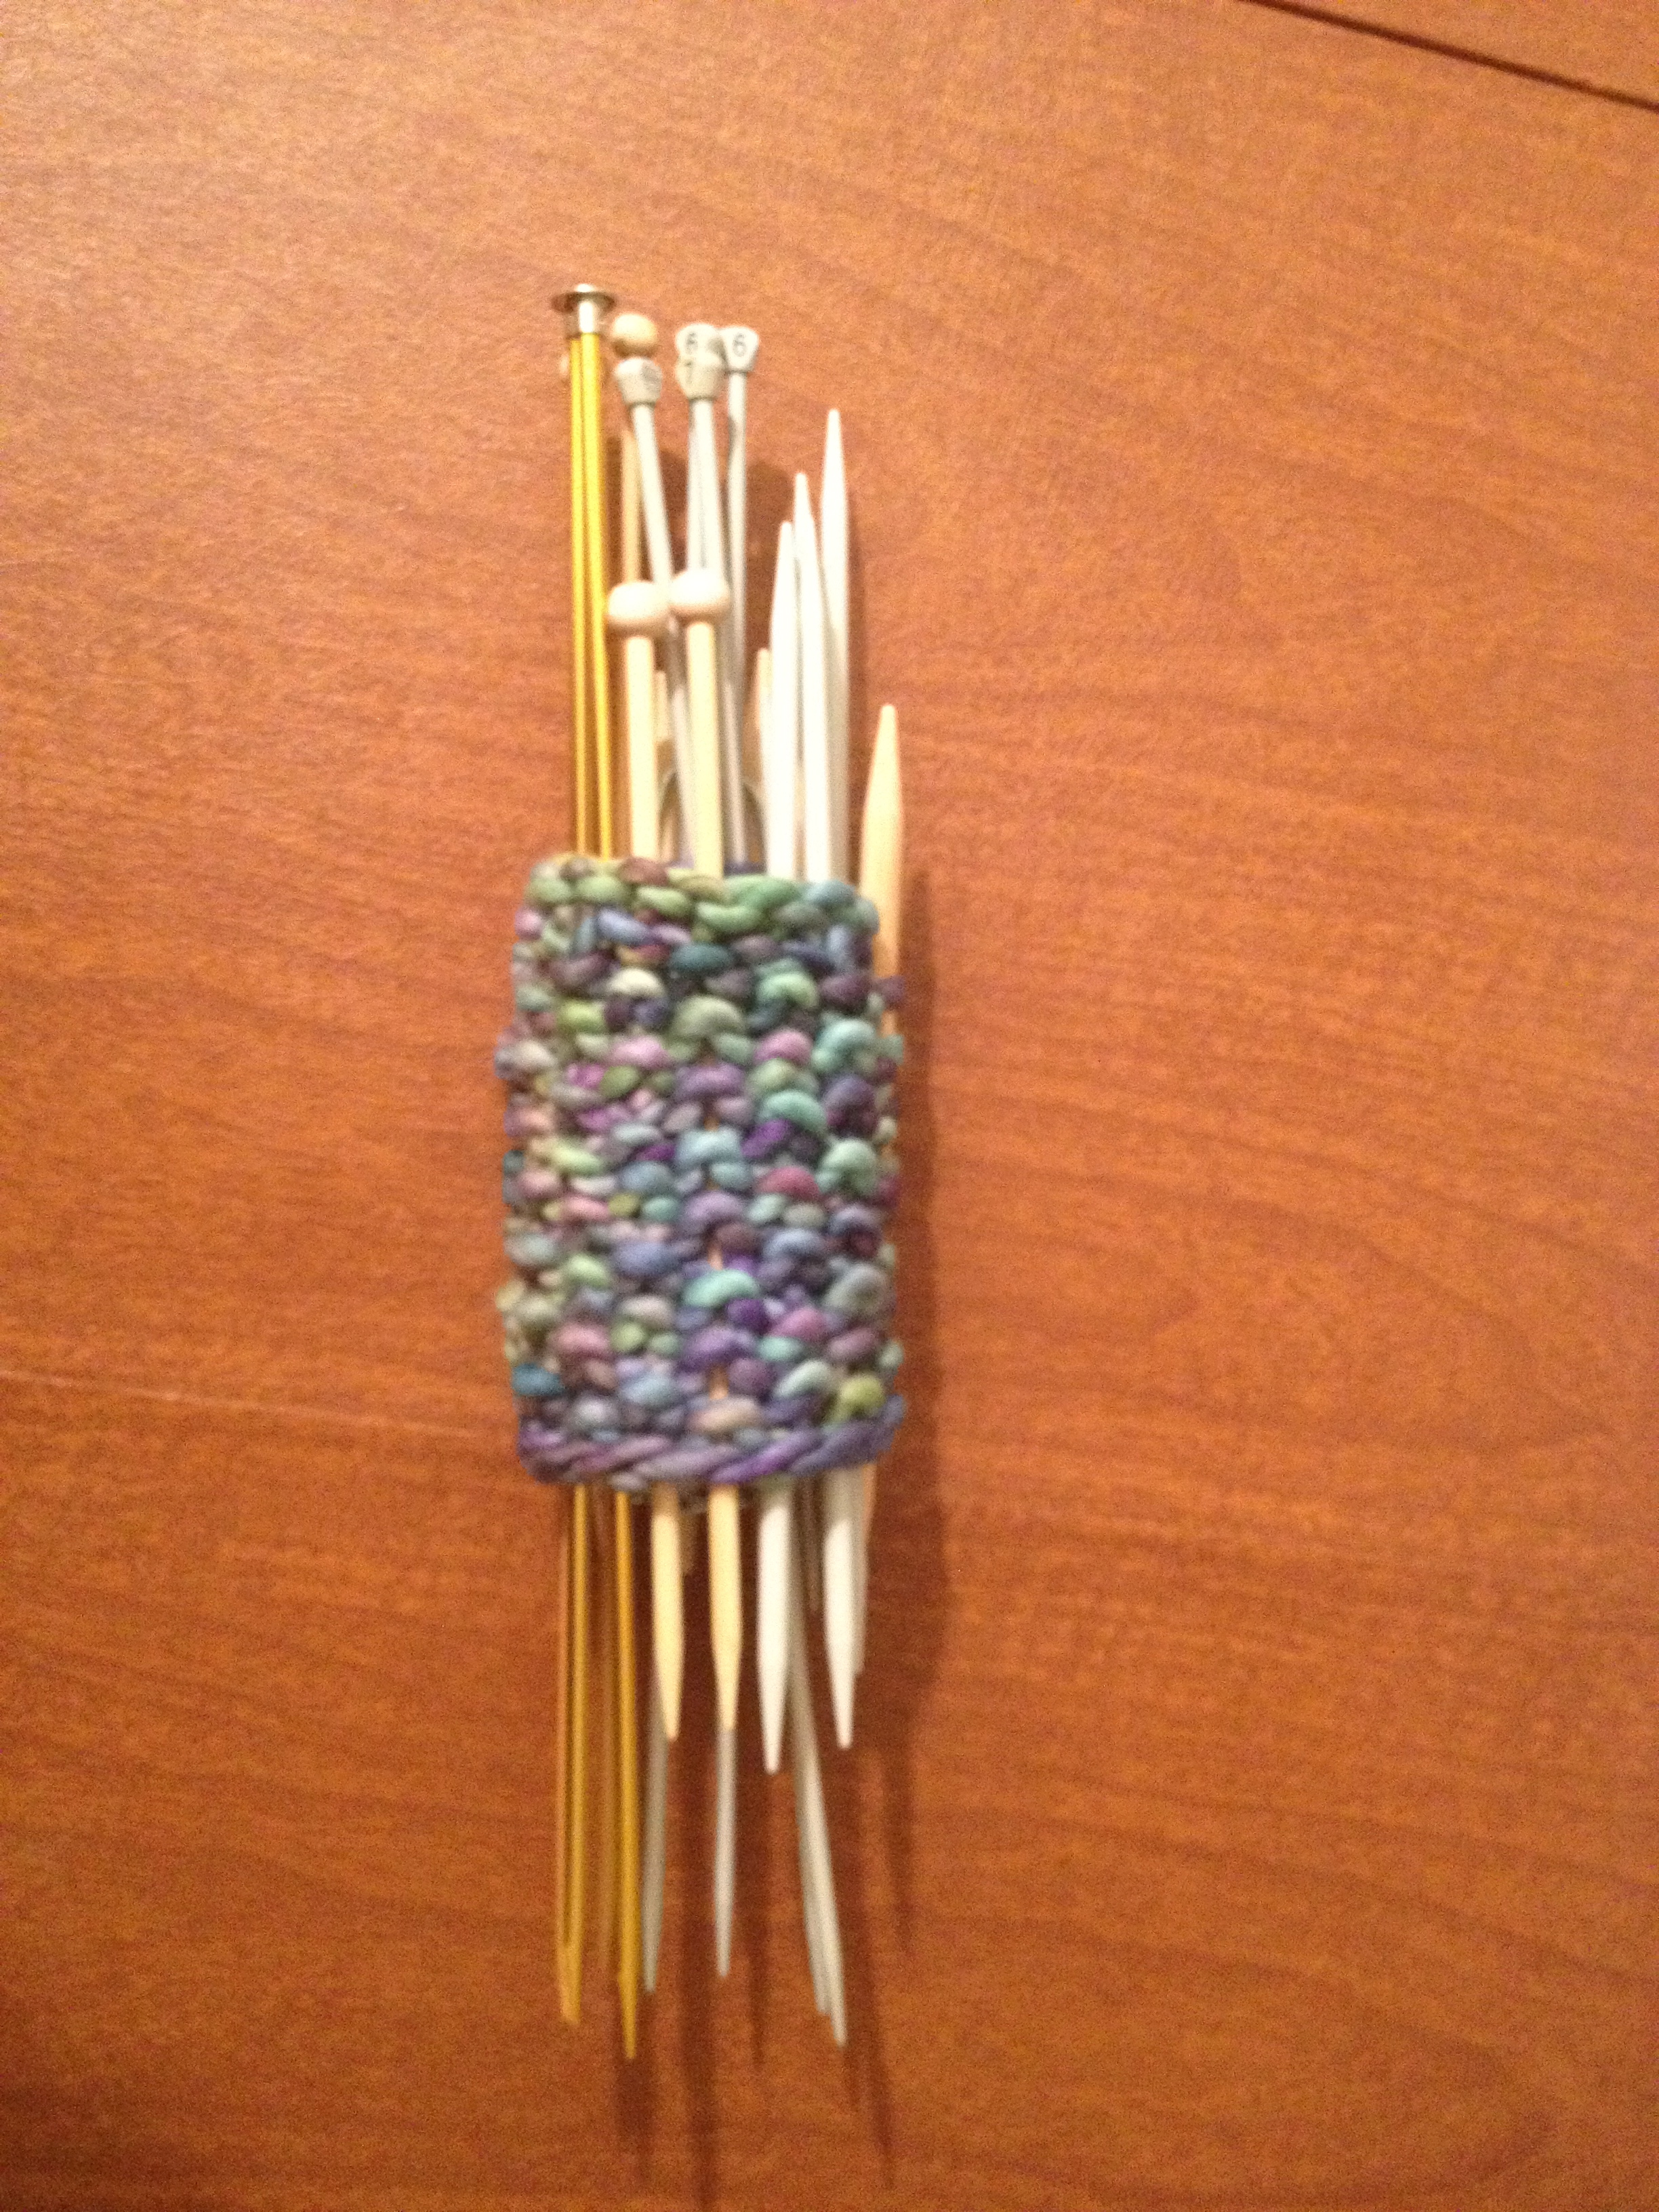 Knitting Pattern Needle Holder : Knitting Needle Holder wordaroundtown.com